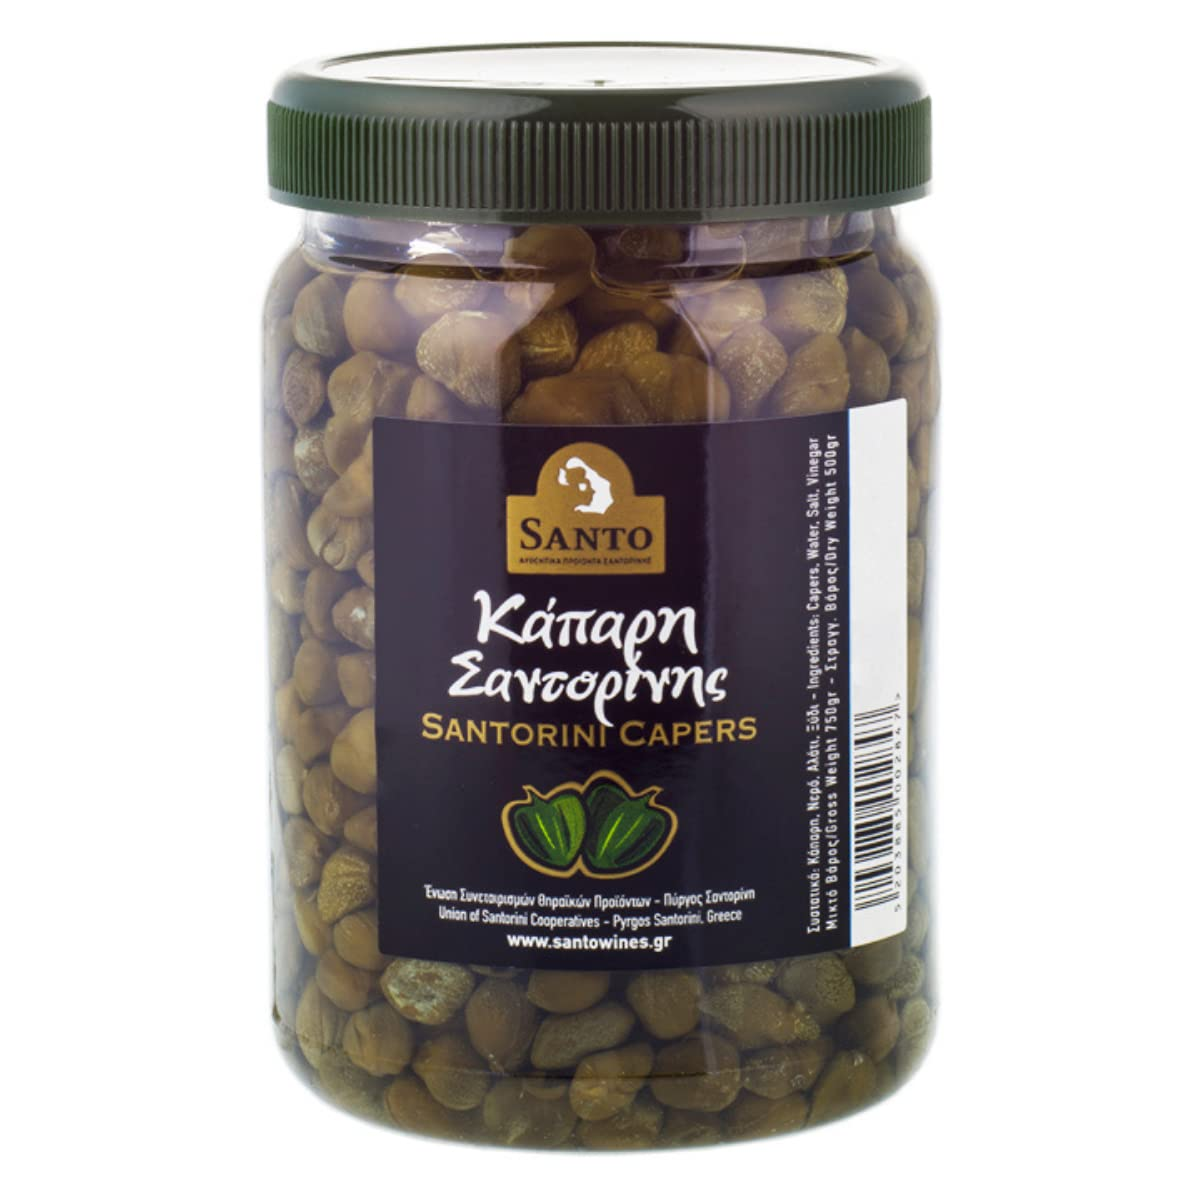 Santo Santorini quality assurance NEW before selling Capers grams 750